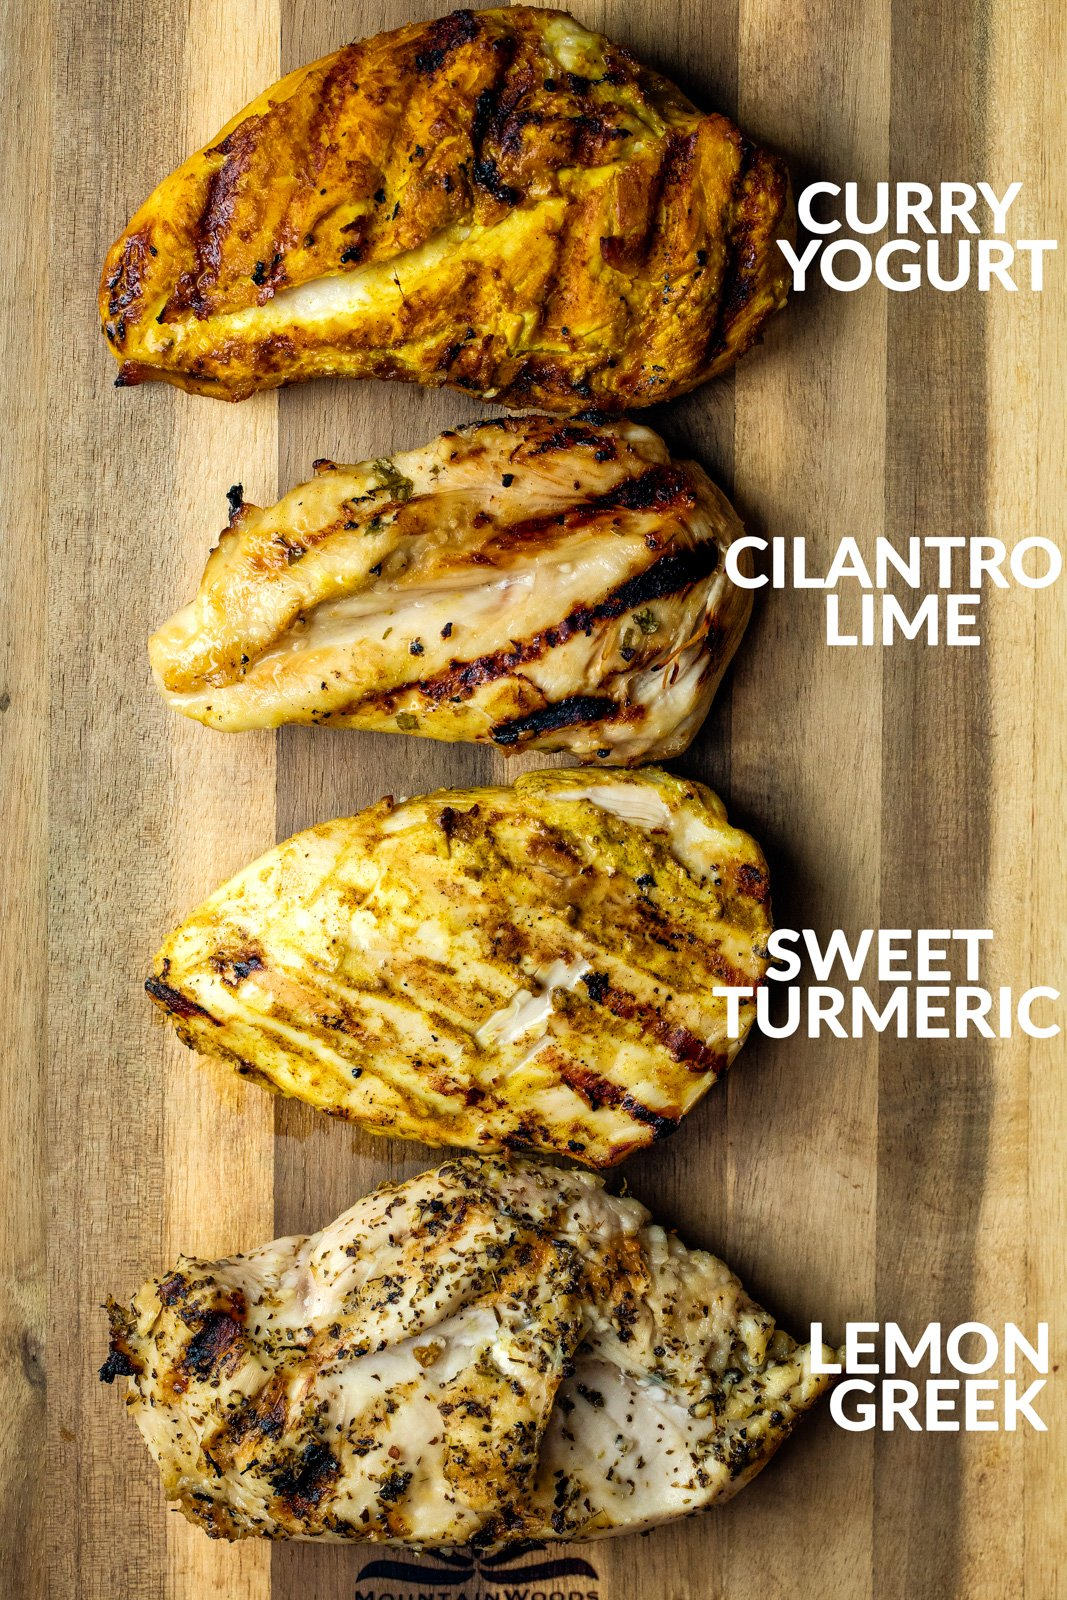 Four pieces of grilled chicken on a wooden platter